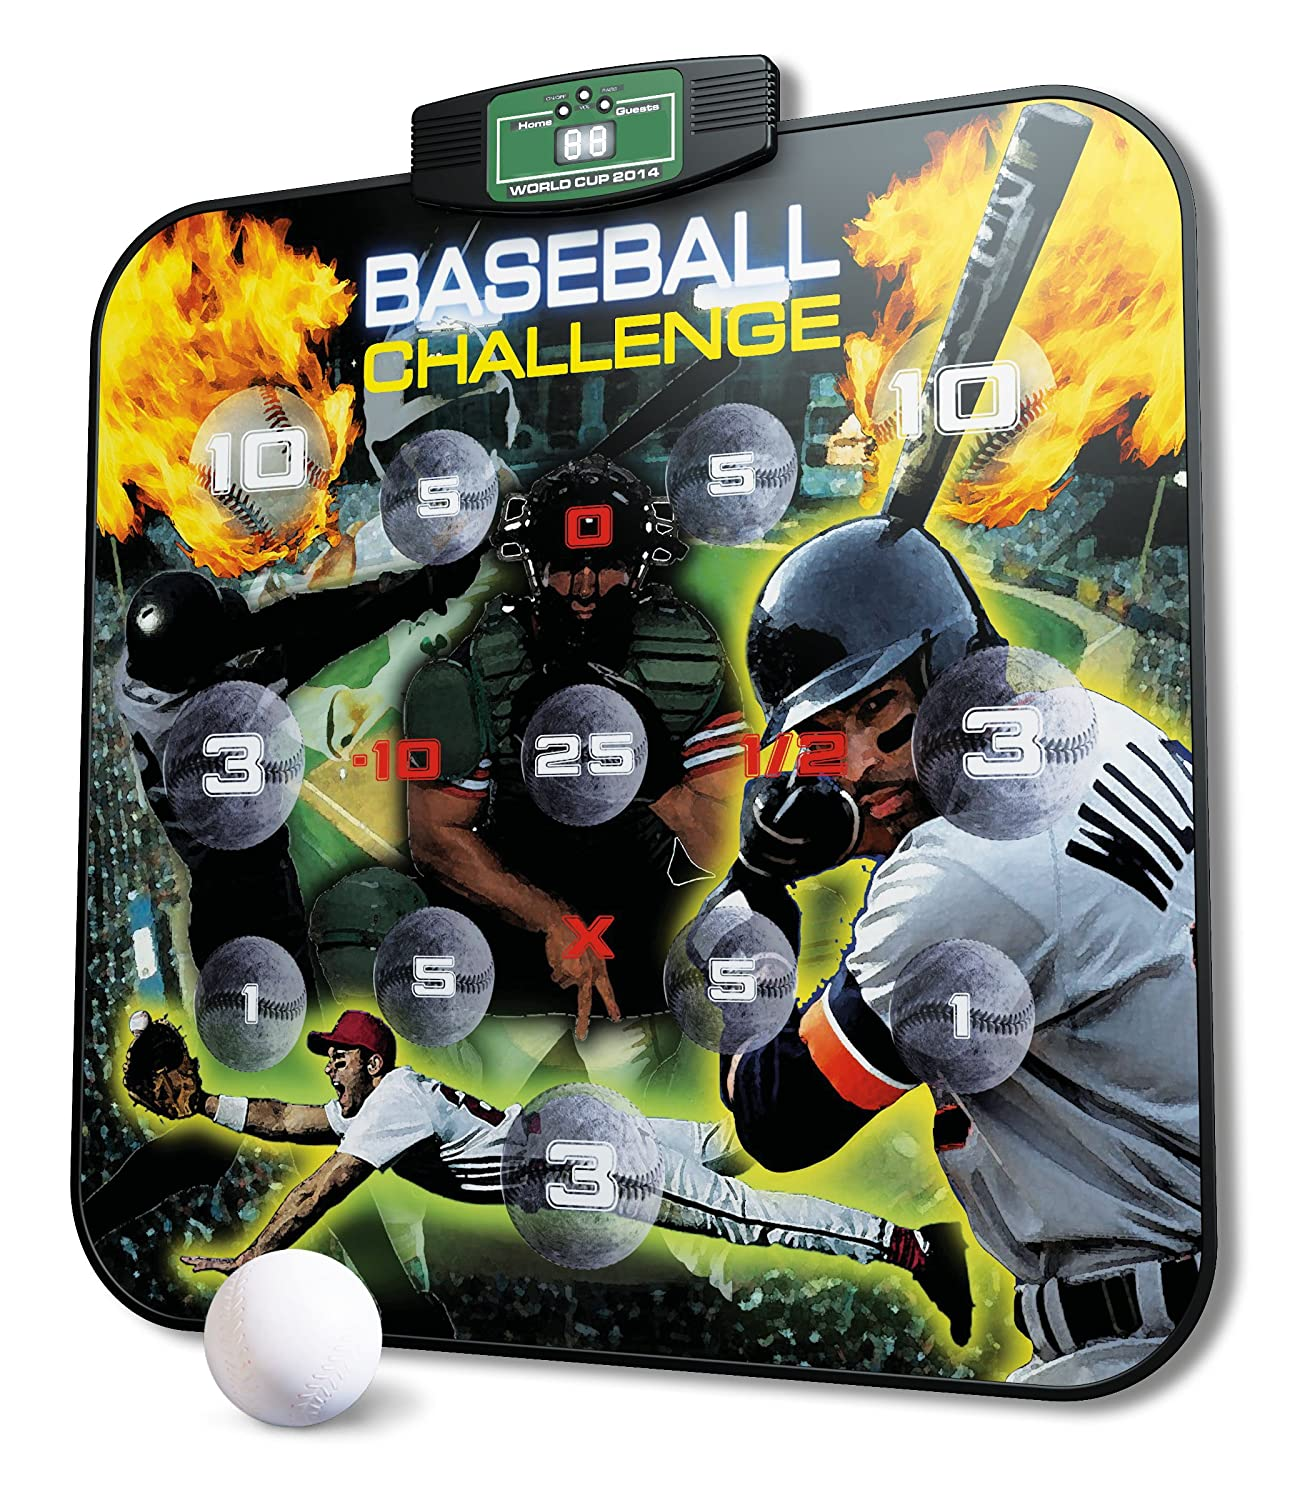 Baseball Challenge Indoor Baseball Game by Diggin